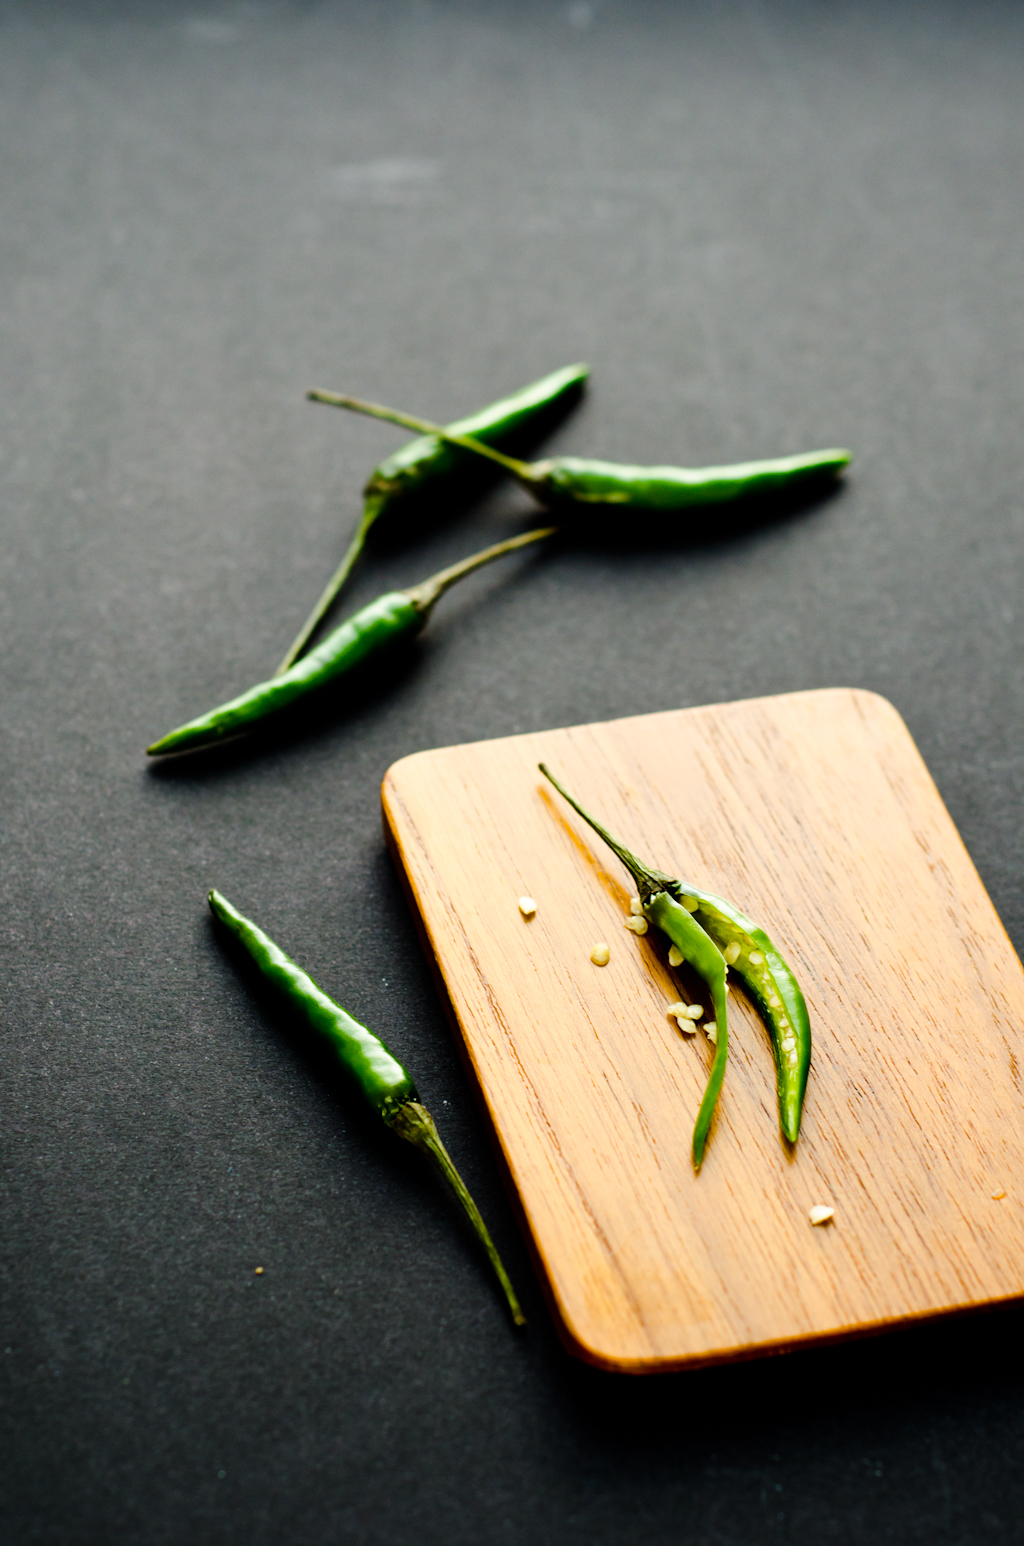 green bird's eye chillies